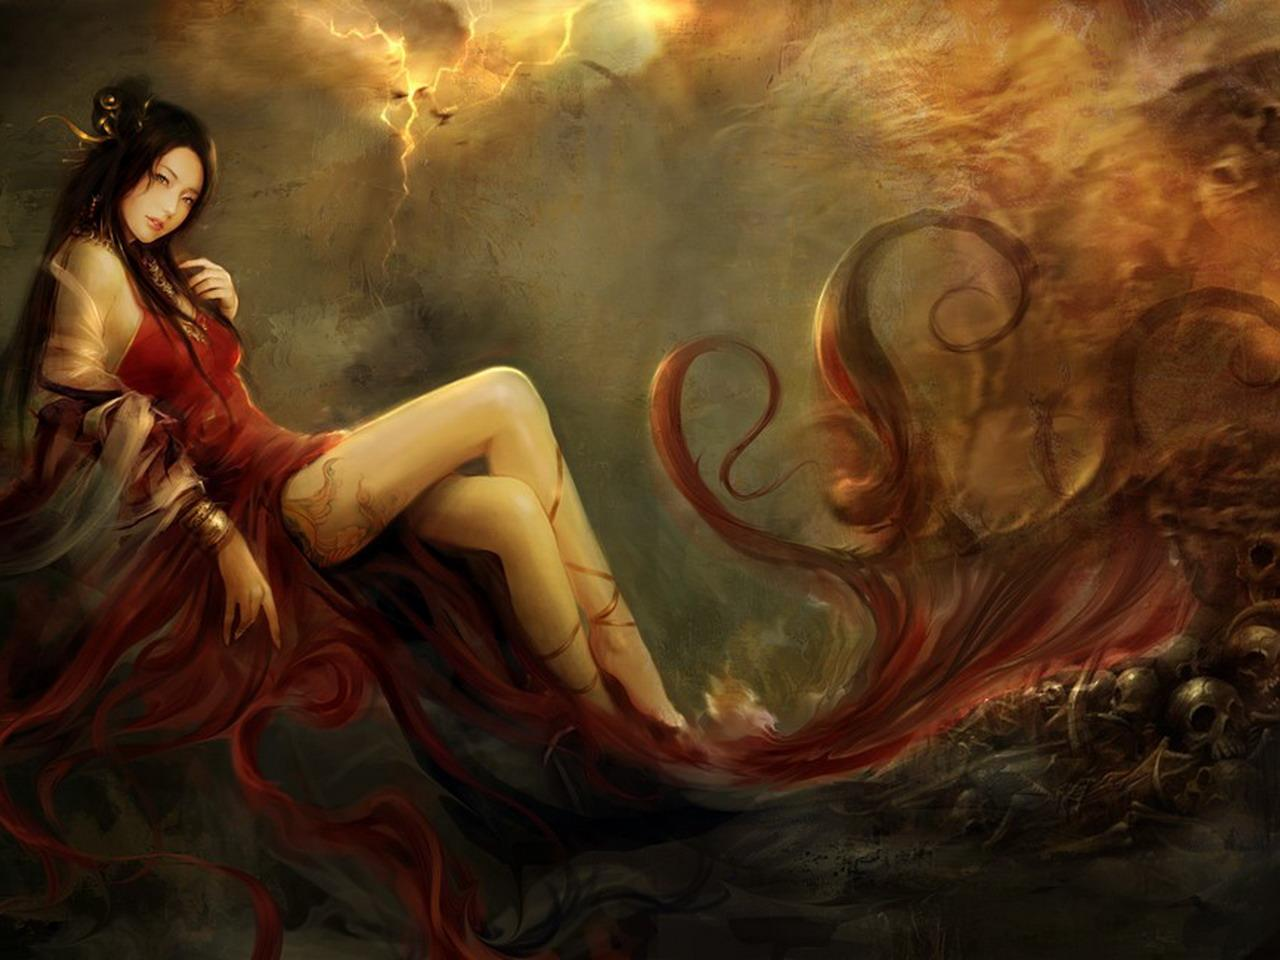 Fantasy Women Wallpaper/Background 1280 x 960 - Id: 232516 - Wallpaper Abyss